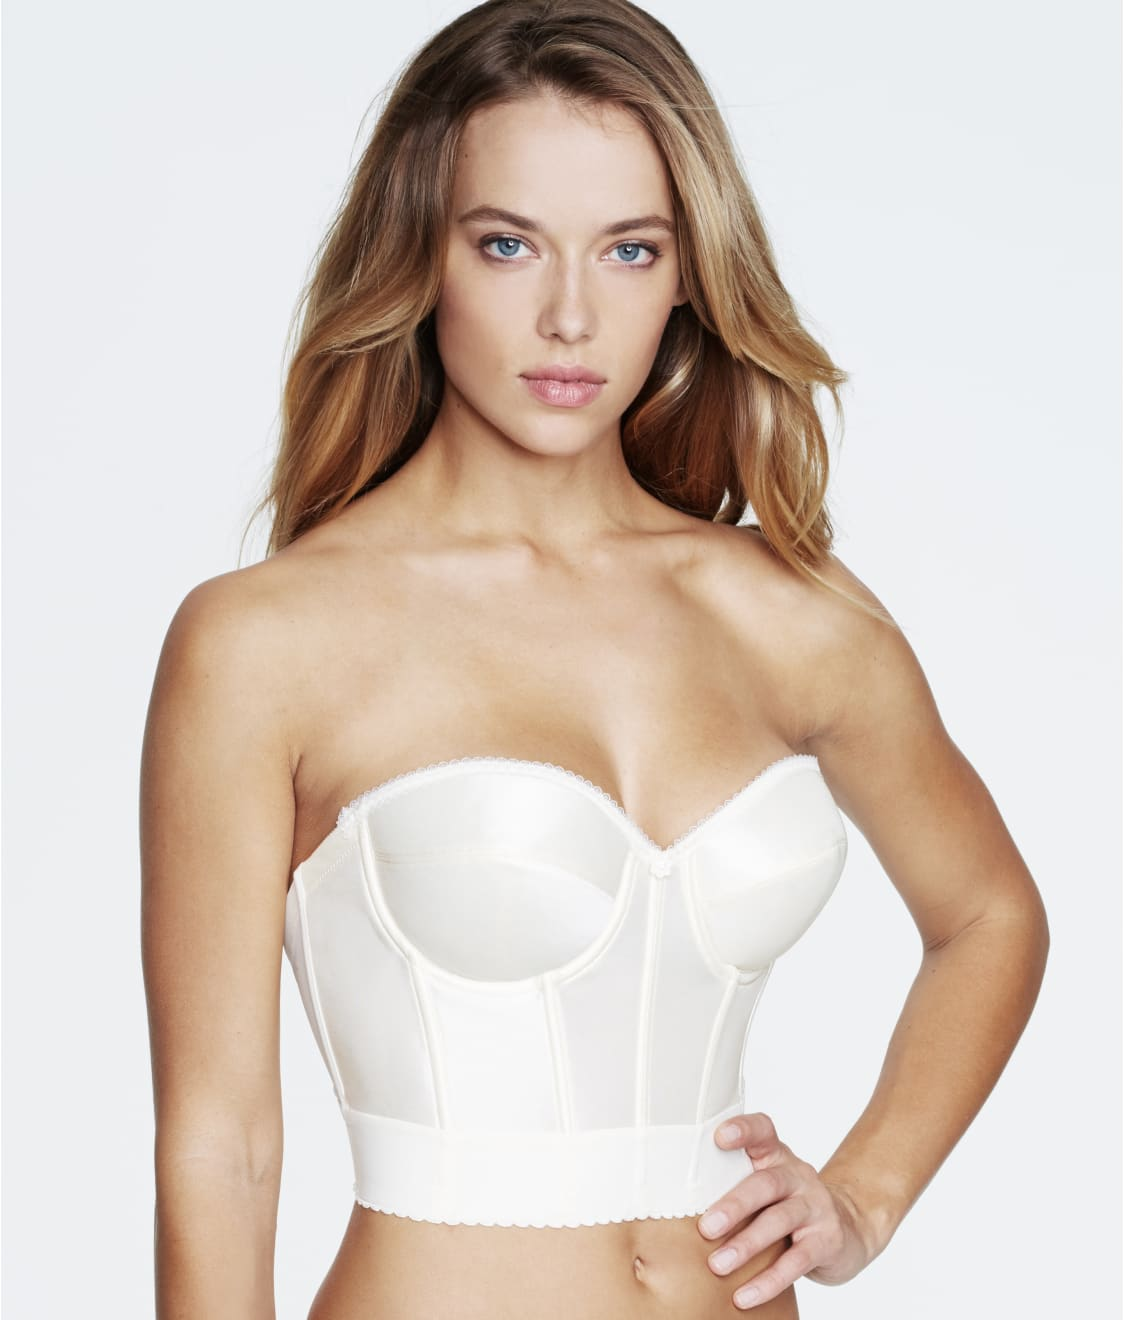 Dominique WHITE Strapless Convertible Smooth Control Bodysuit US 42B